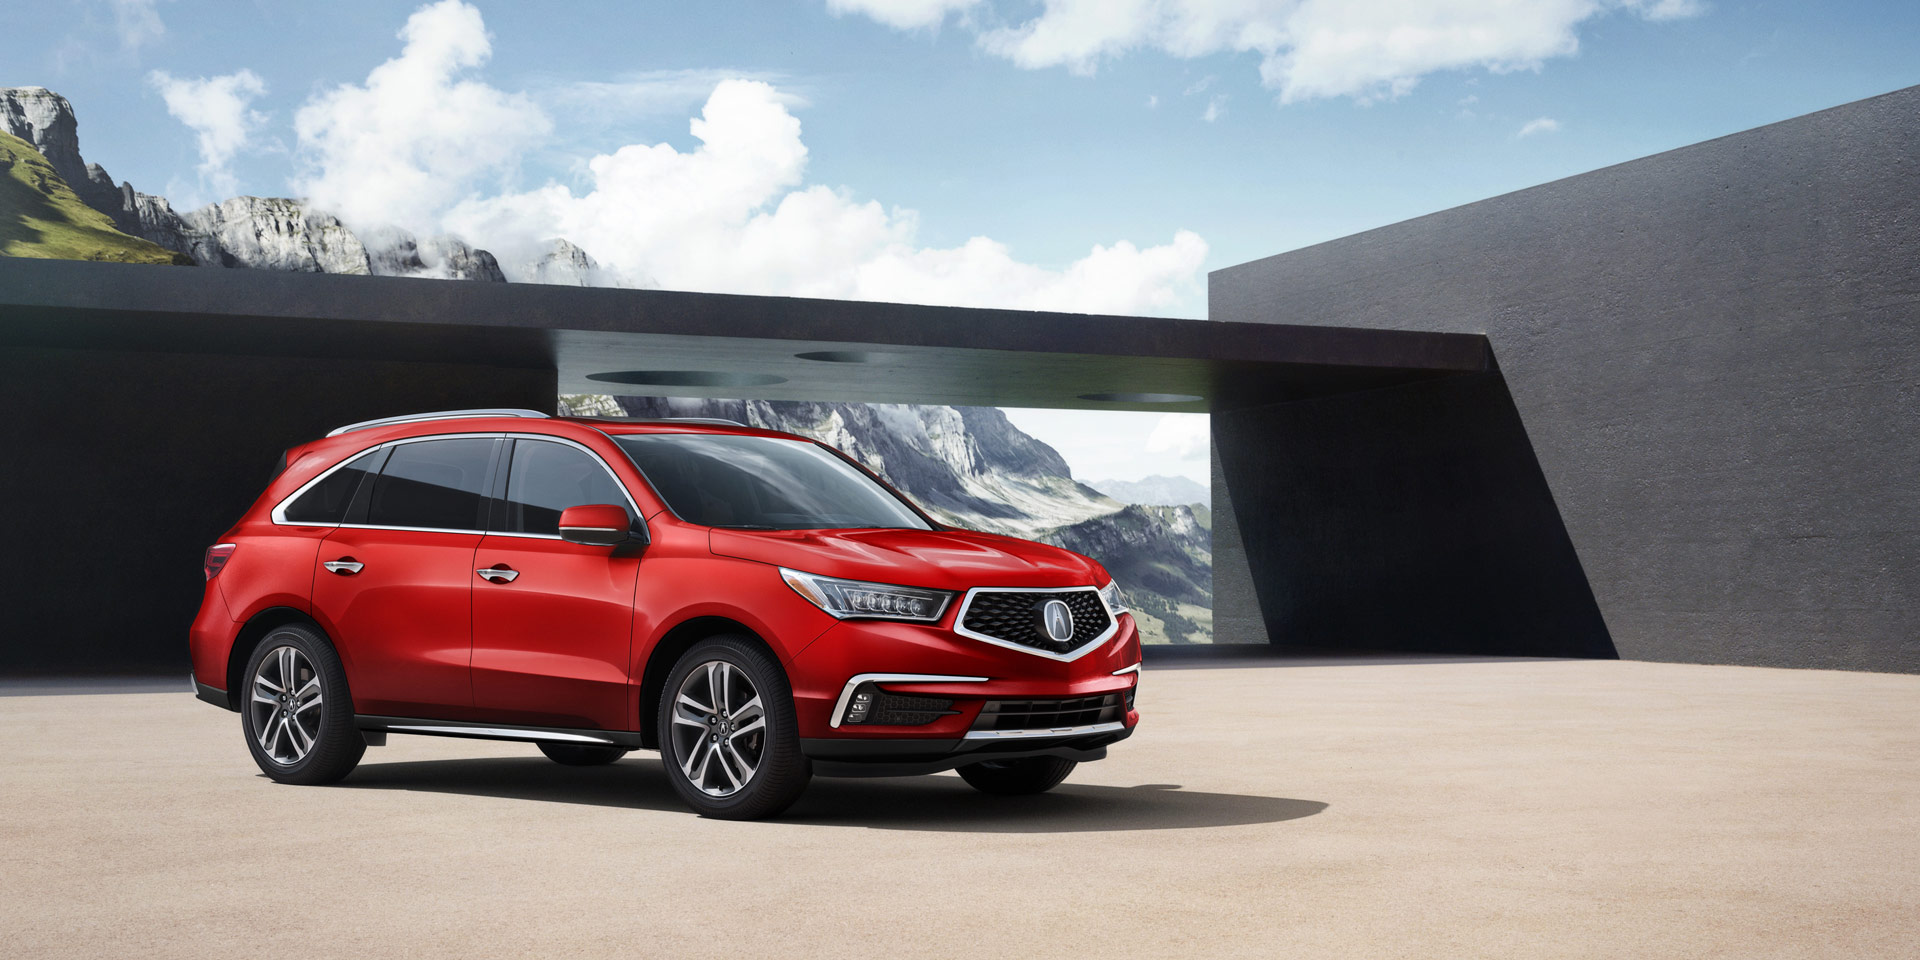 2018 Acura MDX: The 2018 Acura MDX Boasts Several Upgrades For 2018. This  Luxury Crossover SUV Now Offers Standard Apple CarPlay And Android Auto ...